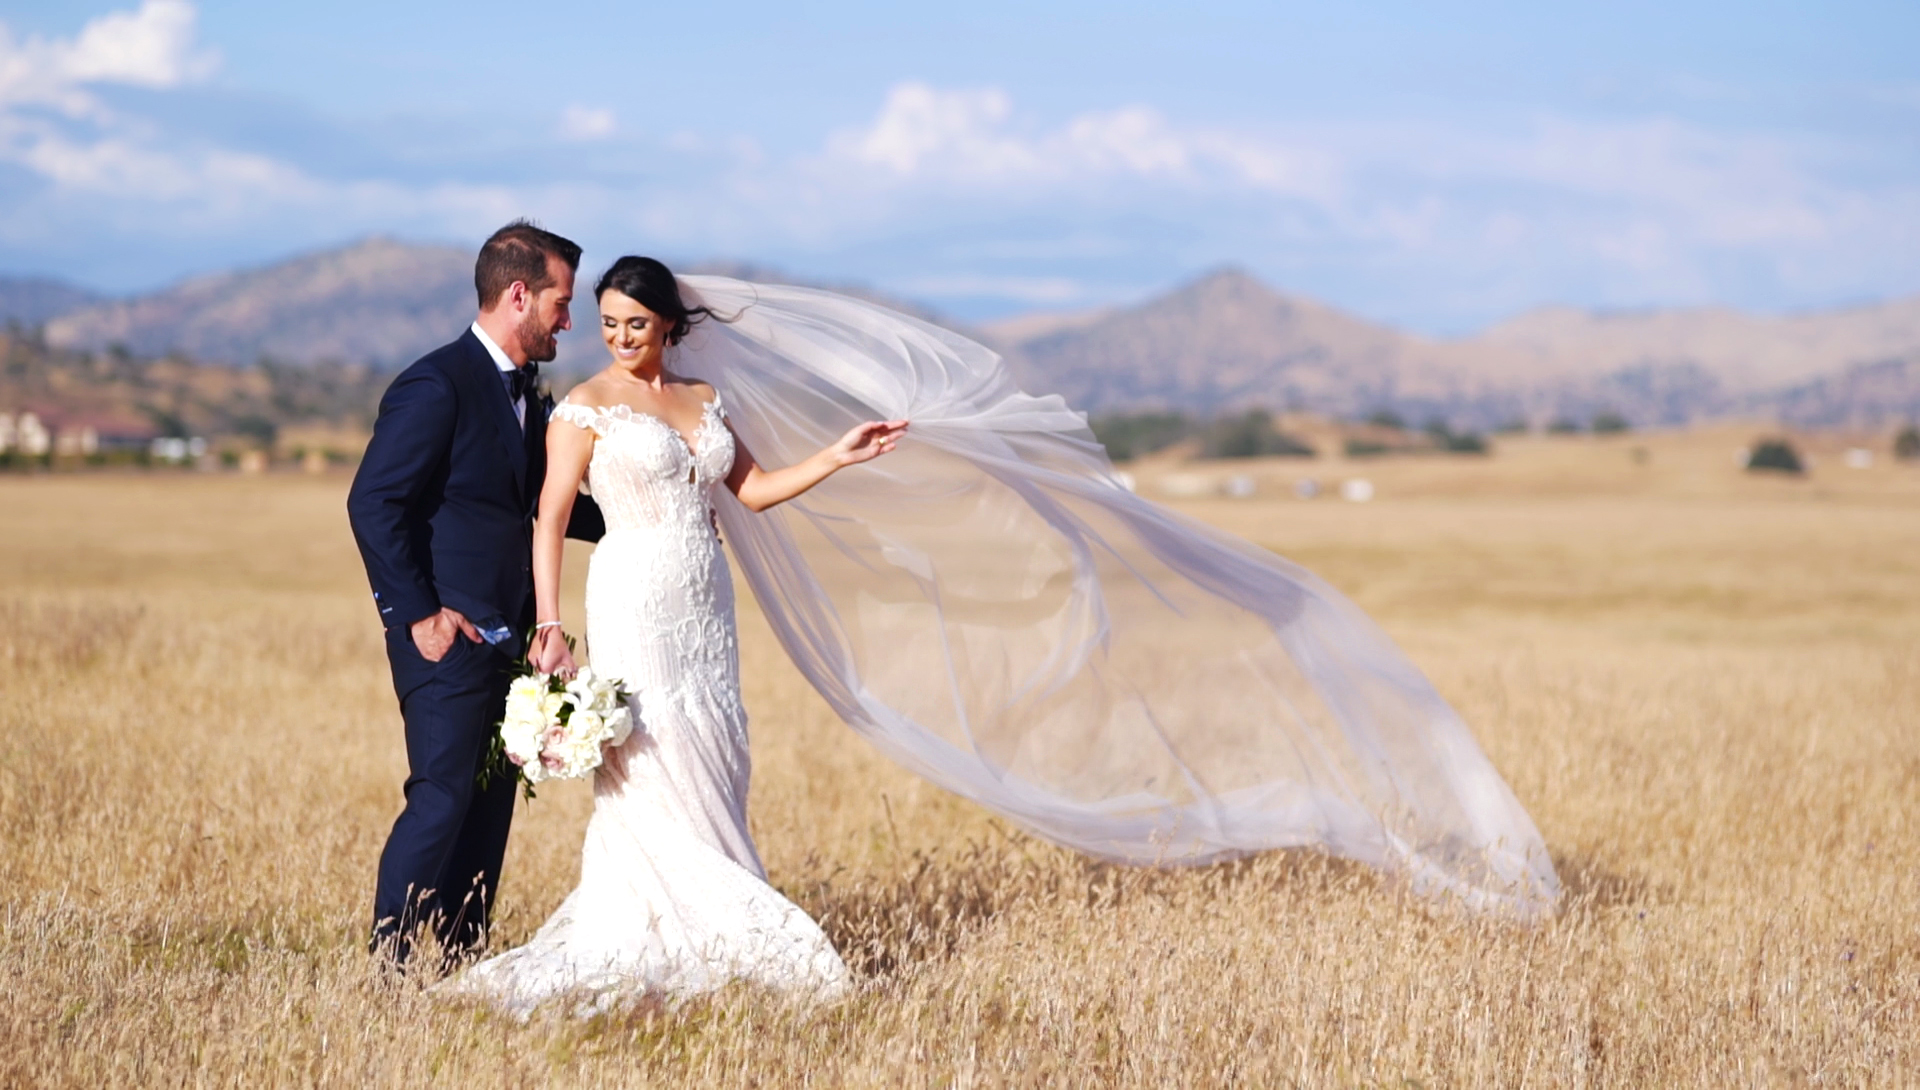 Gabriella  + Paul | Fresno, California | A Family Farm